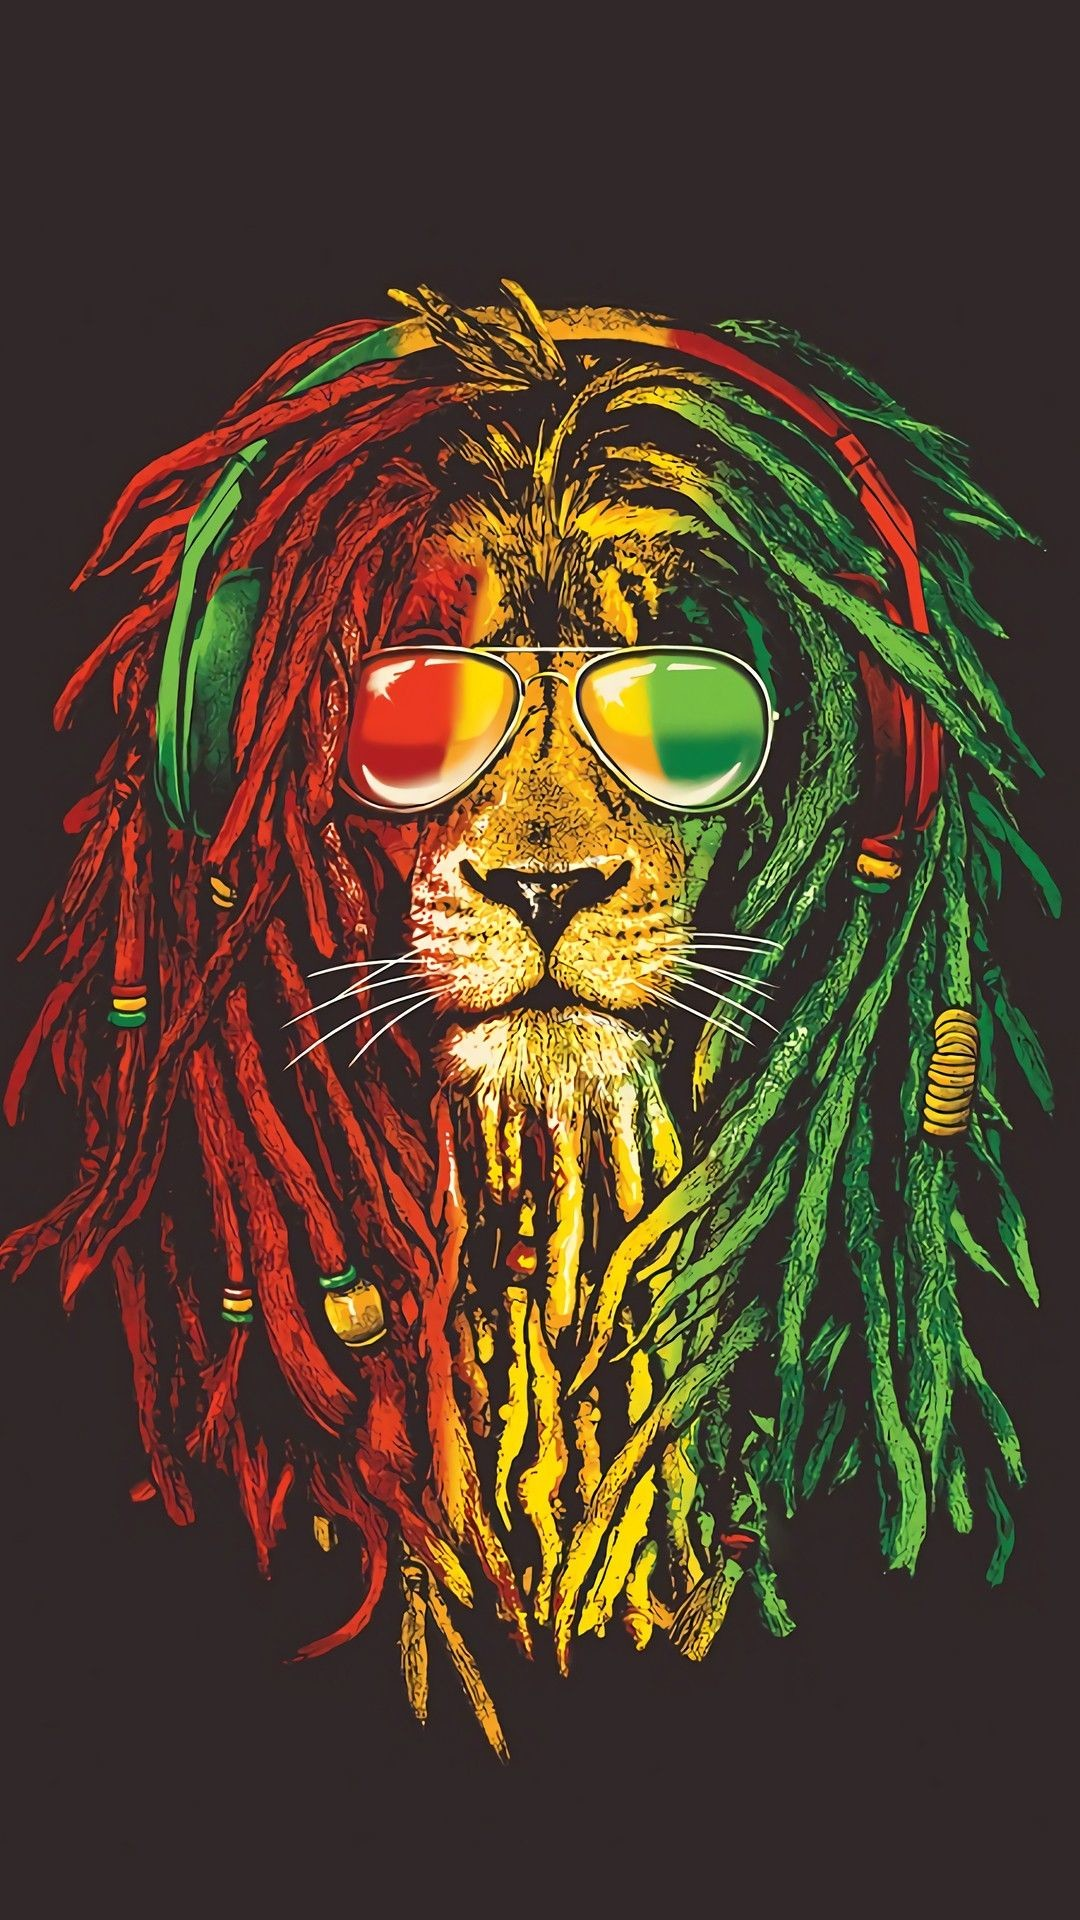 Reggae Hd Wallpaper For Android ...